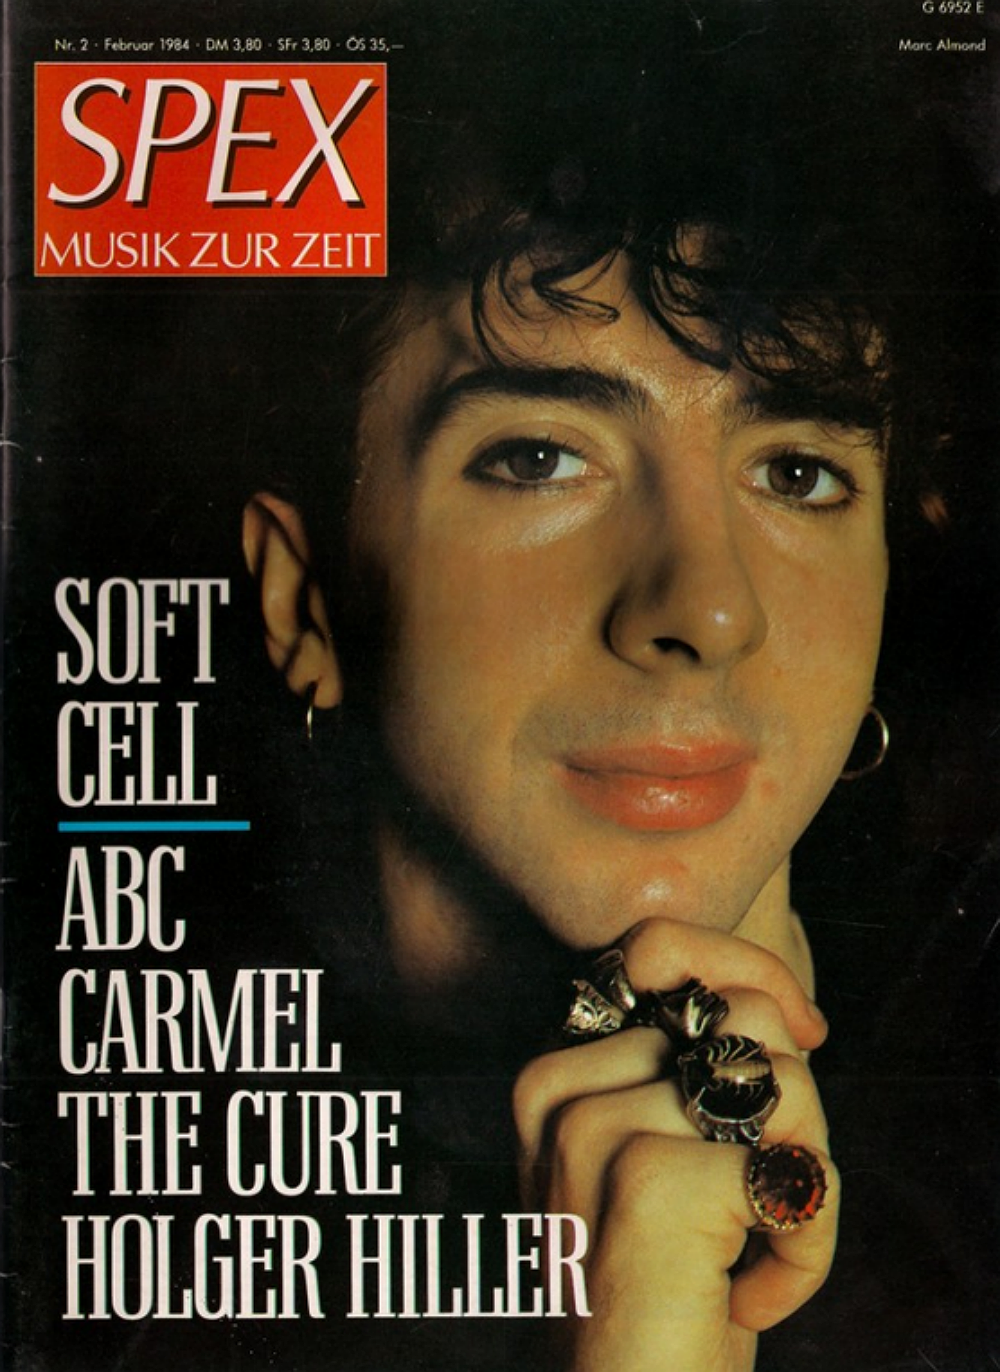 spex_soft cell_1